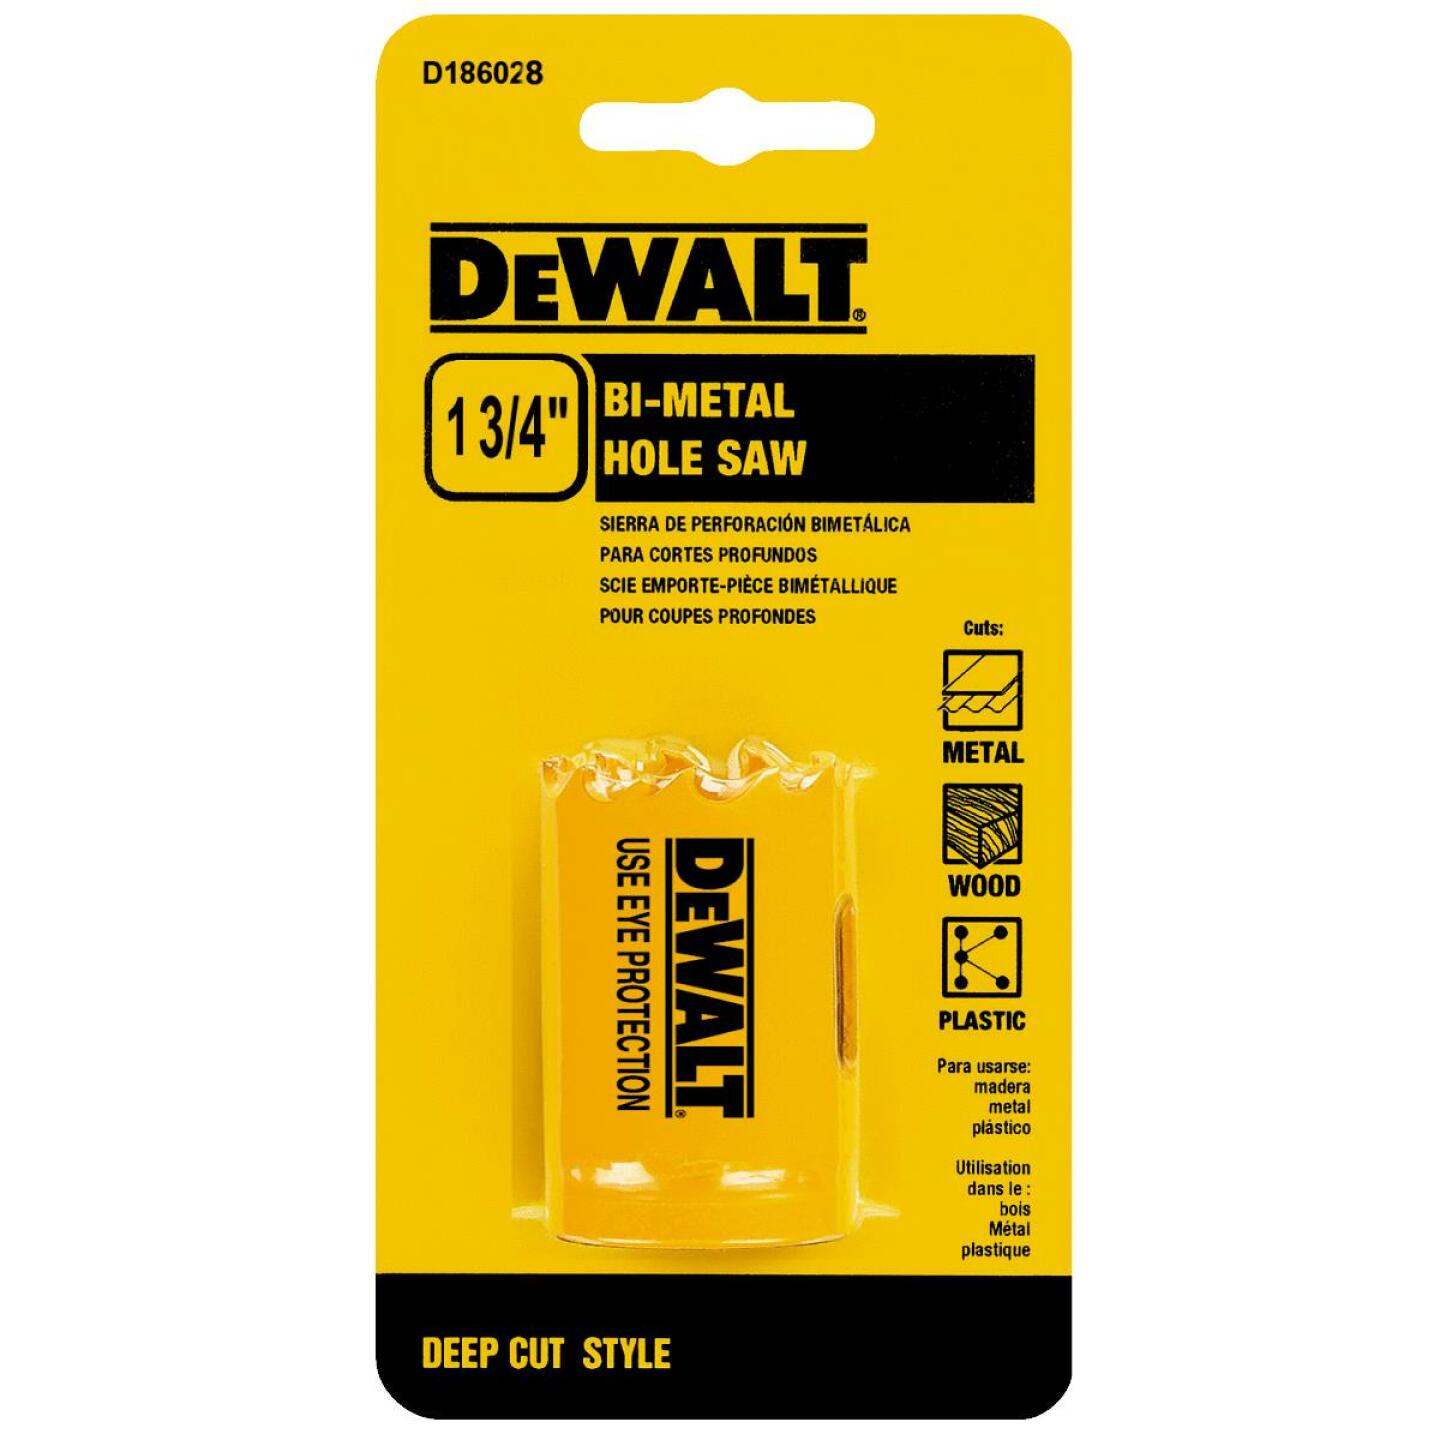 DeWalt 1-3/4 In. Bi-Metal Hole Saw Image 1